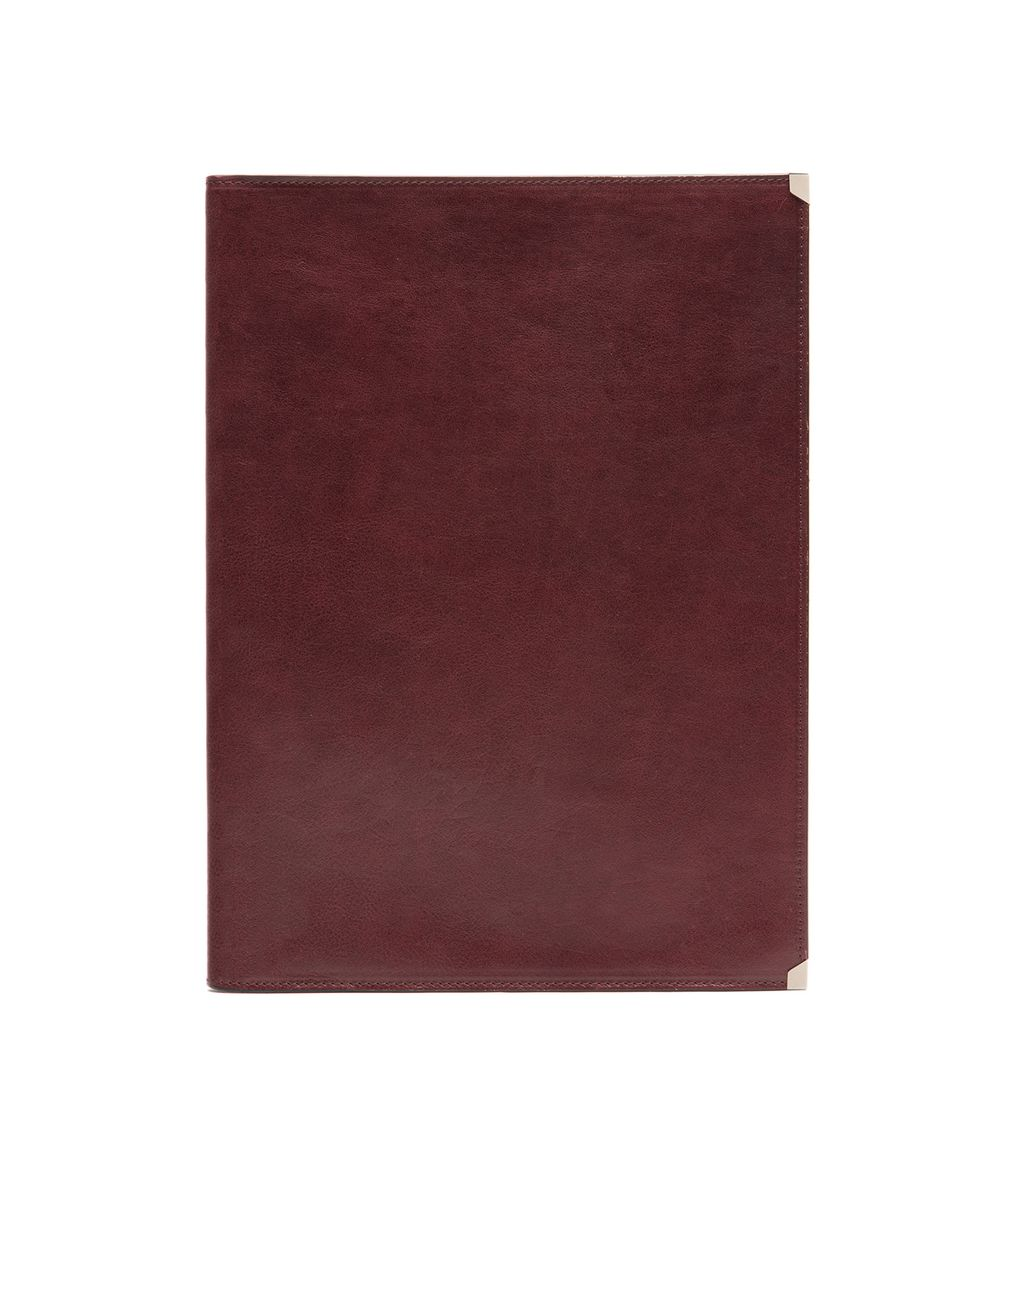 BRIONI Burgundy Zip Around Document Holder Leather Goods Man f